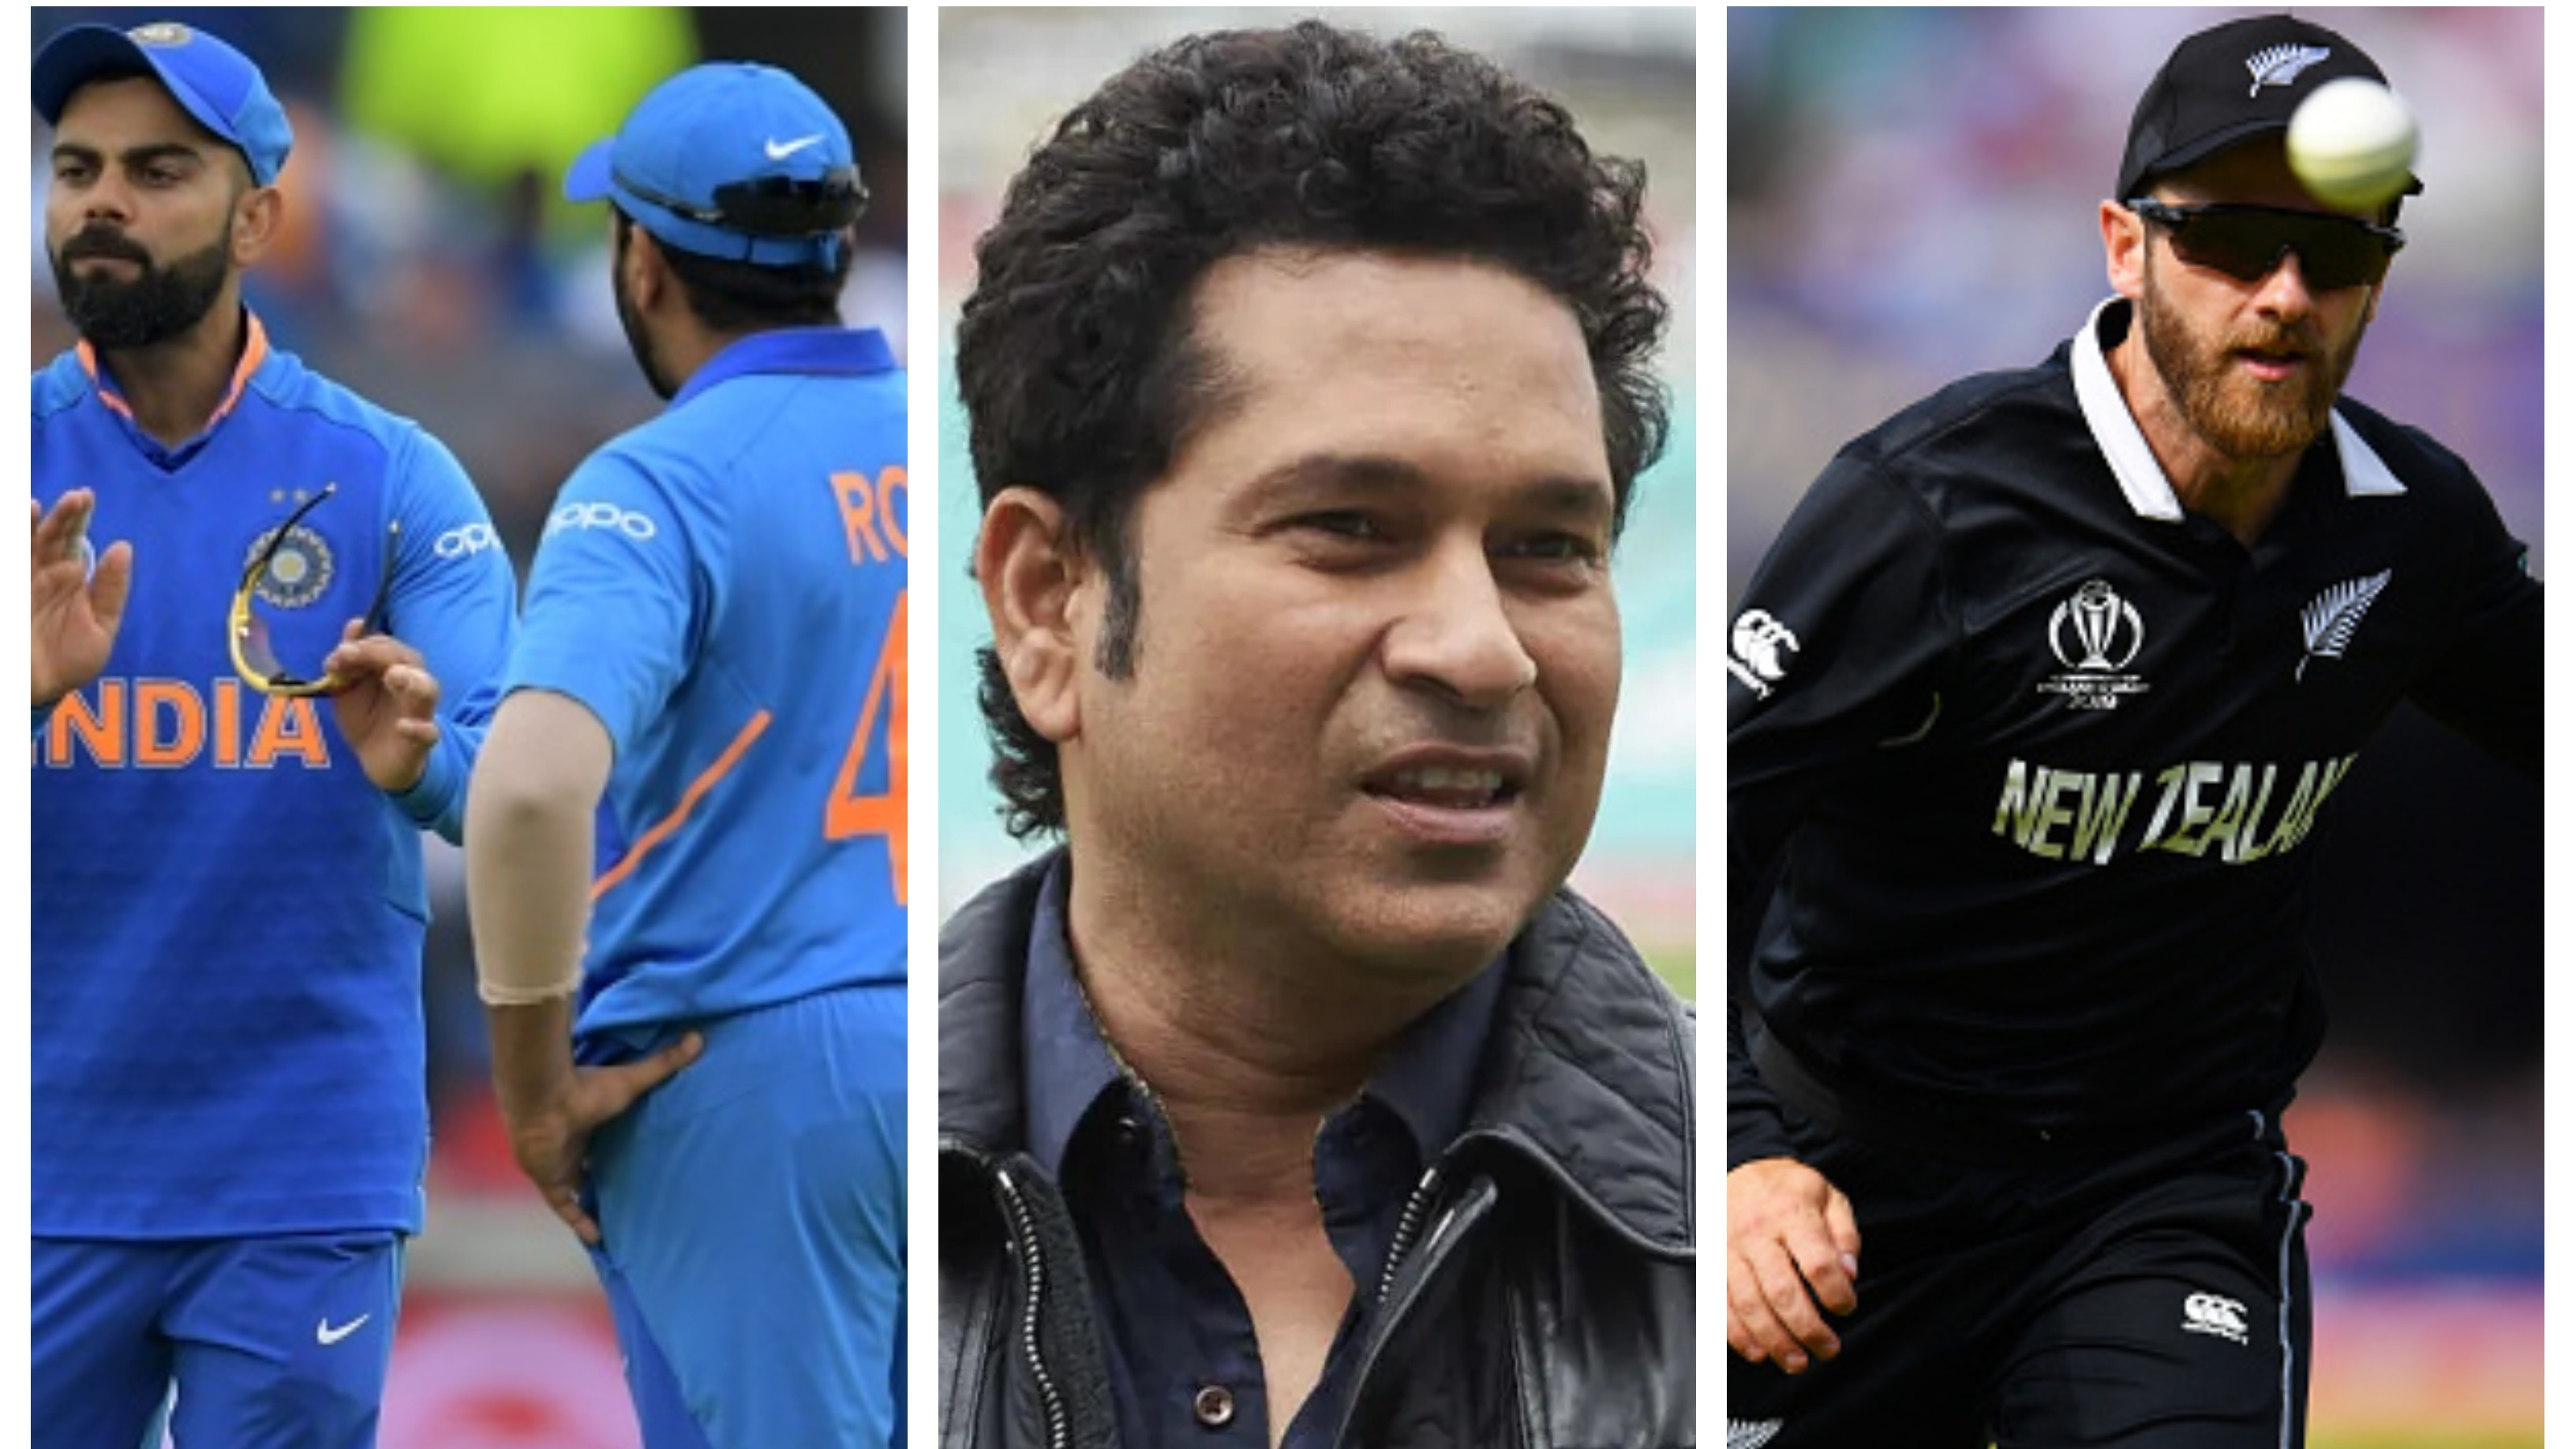 CWC 2019: Sachin Tendulkar names his best XI of this World Cup; picks five Indians in the side